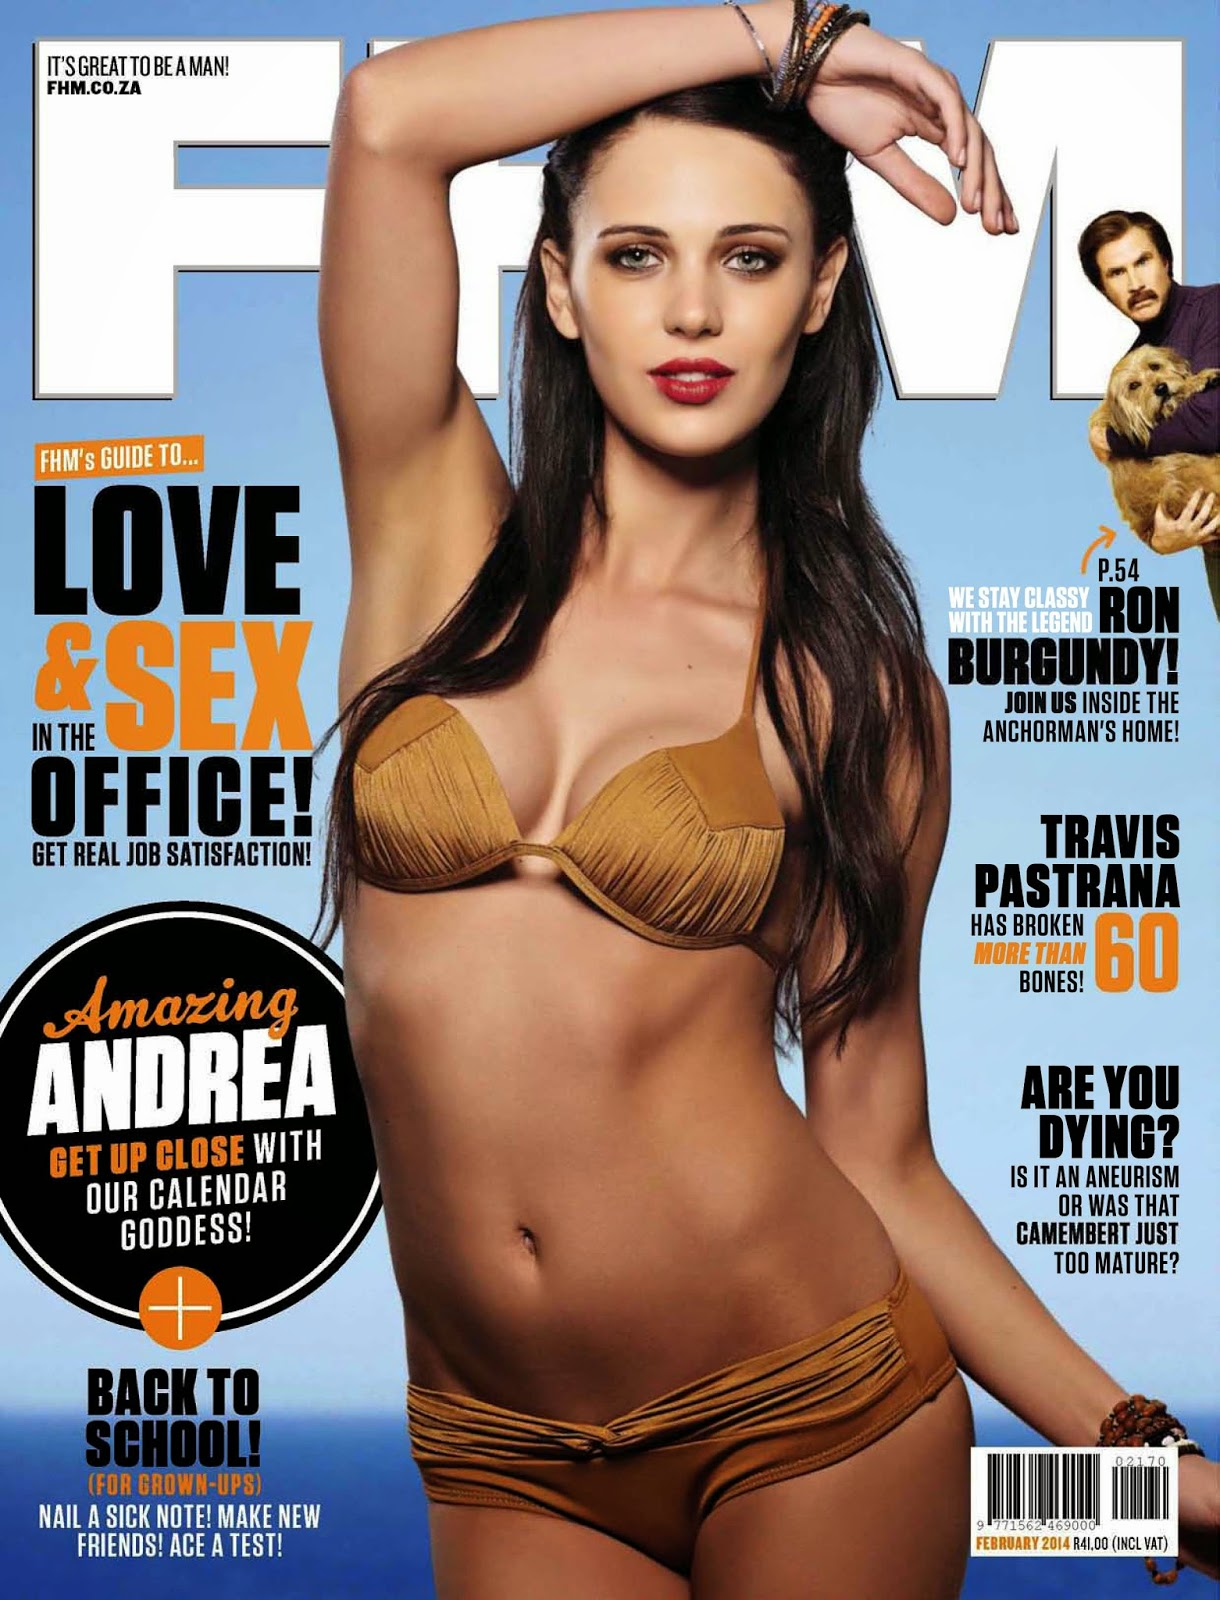 Magazine cover : Andrea Scheepers Magazine Photoshoot Pics on FHM Magazine South Africa February 2014